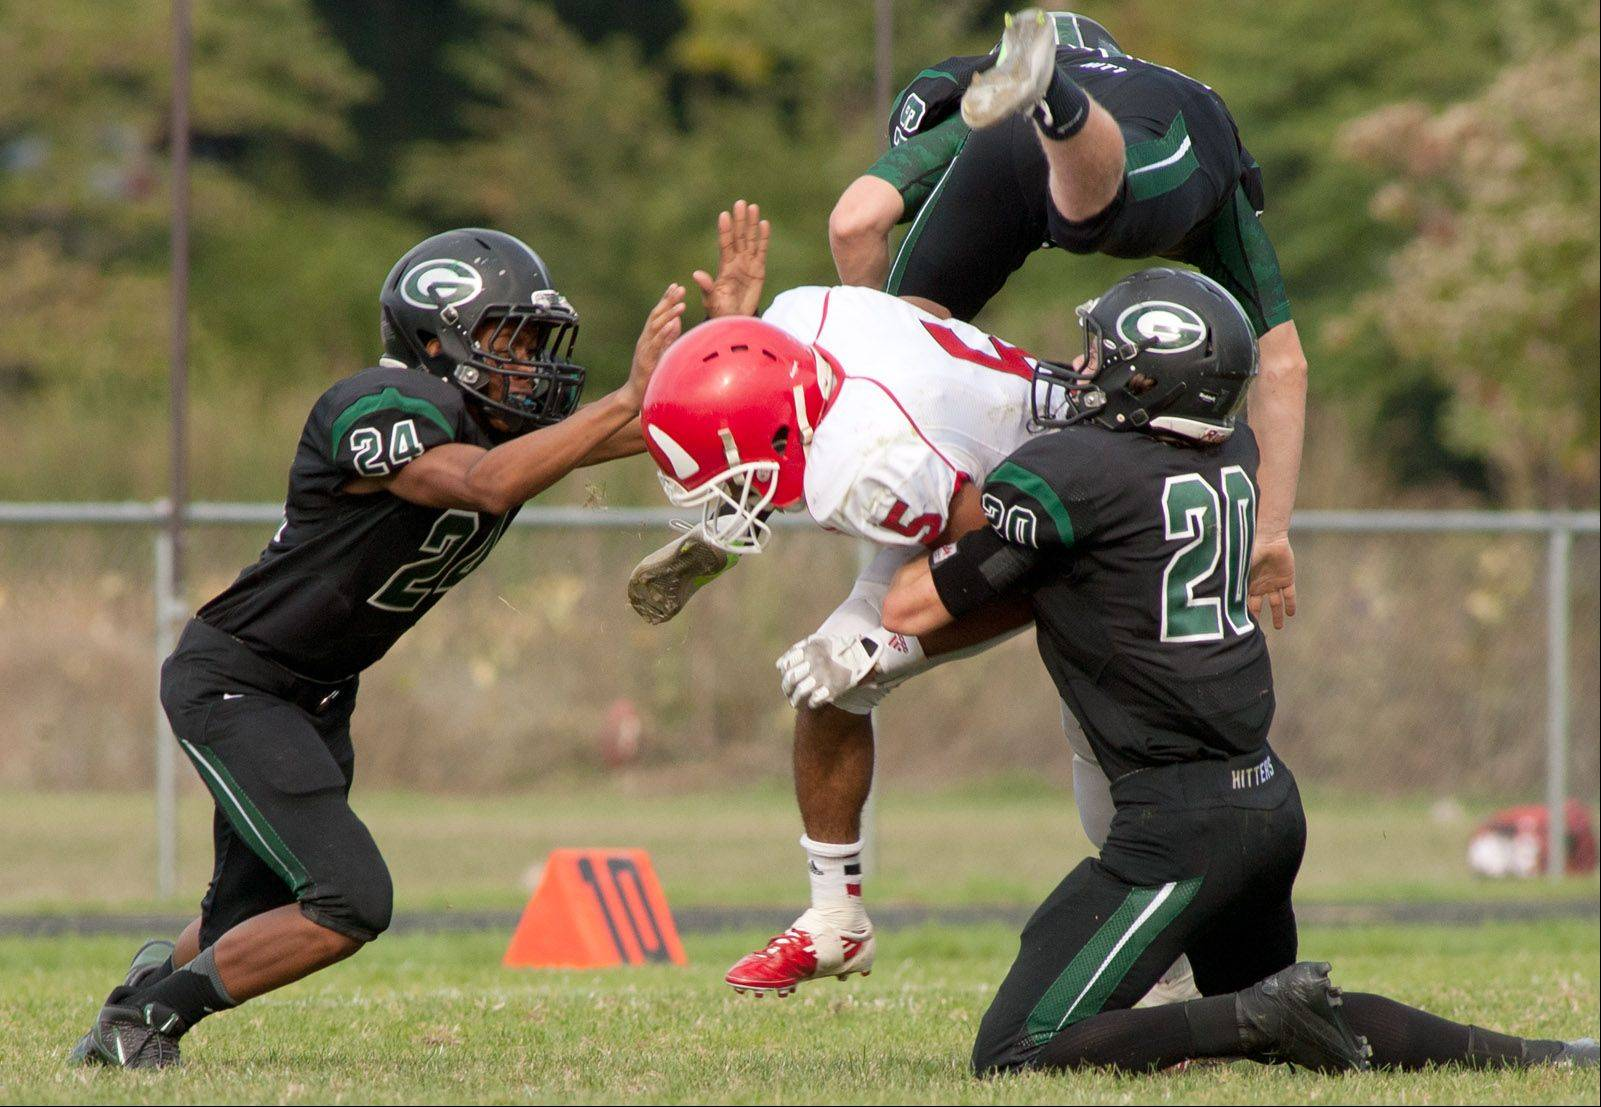 Hinsdale Central's Juwan Edmund, center, is tackled by Glenbard West's Ryan Thomas, left, and Jason Balogh, right.